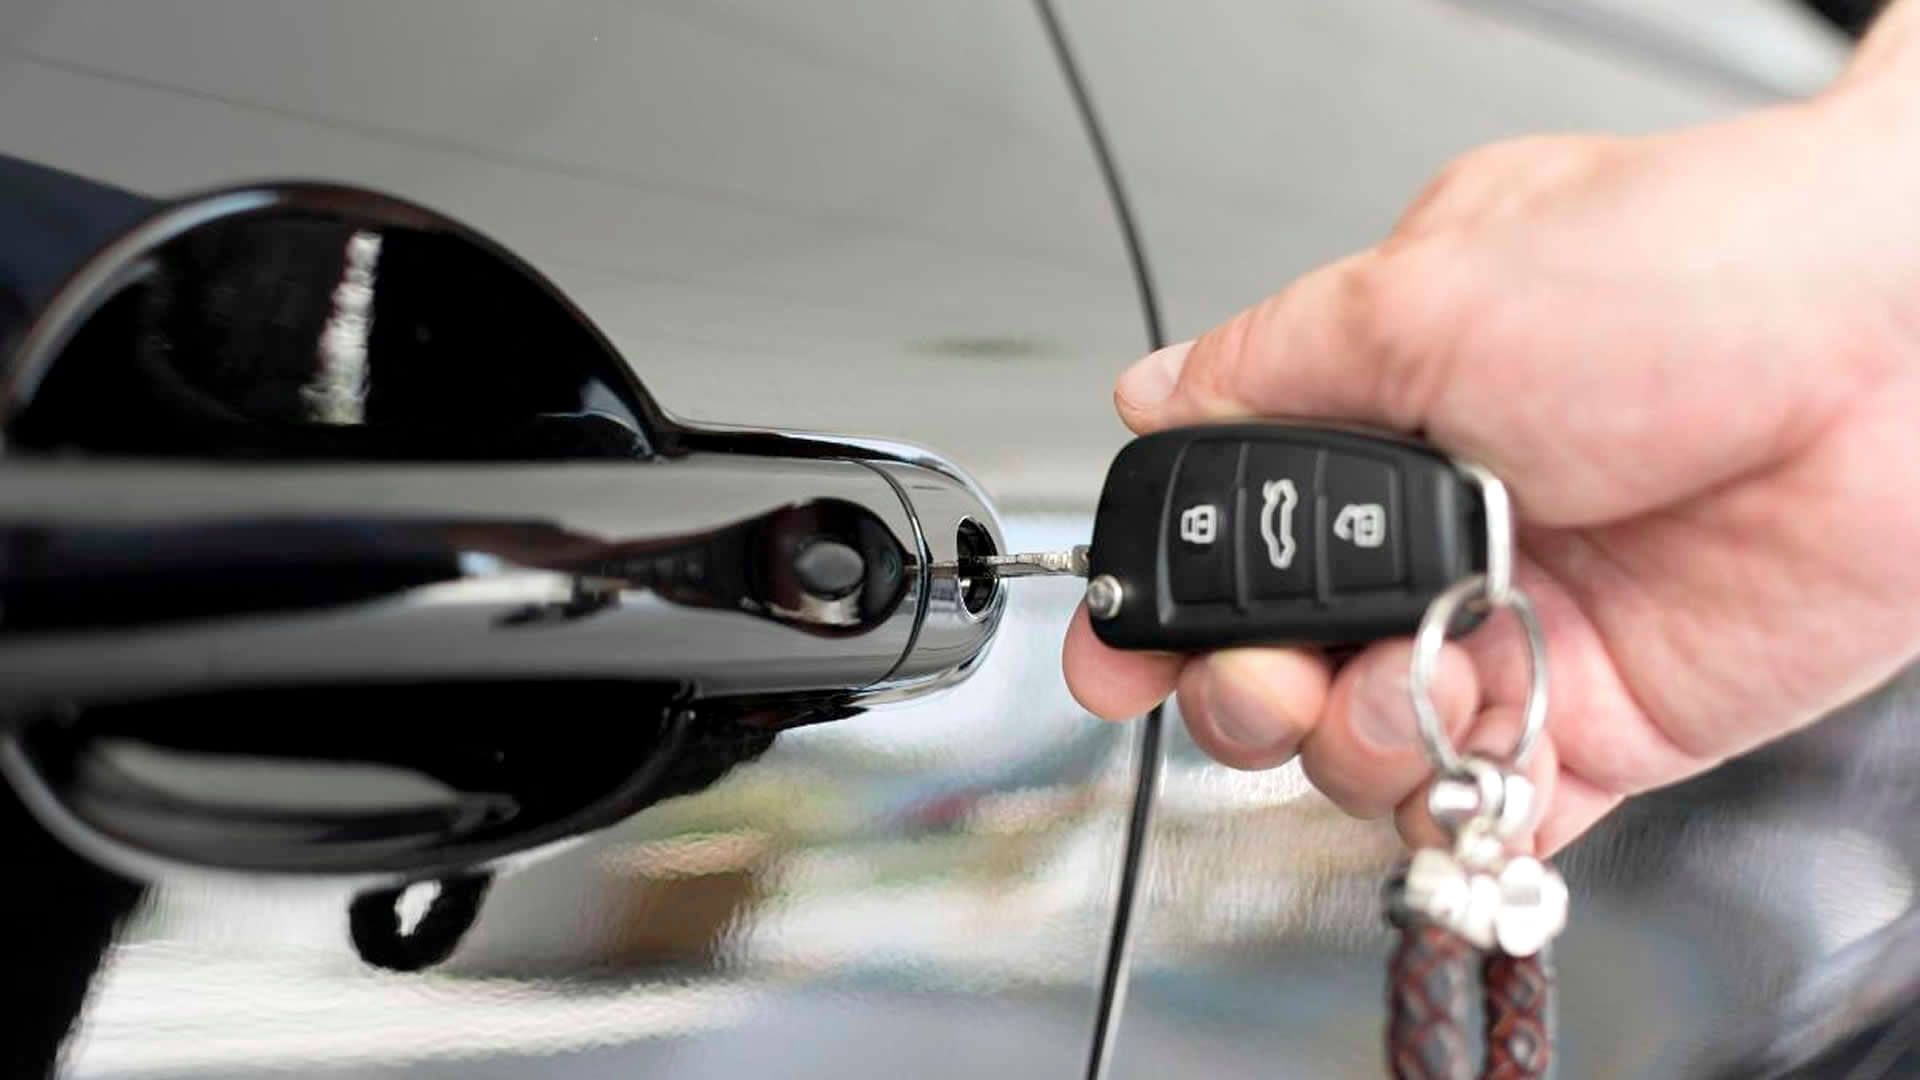 Replacement Car Key Services